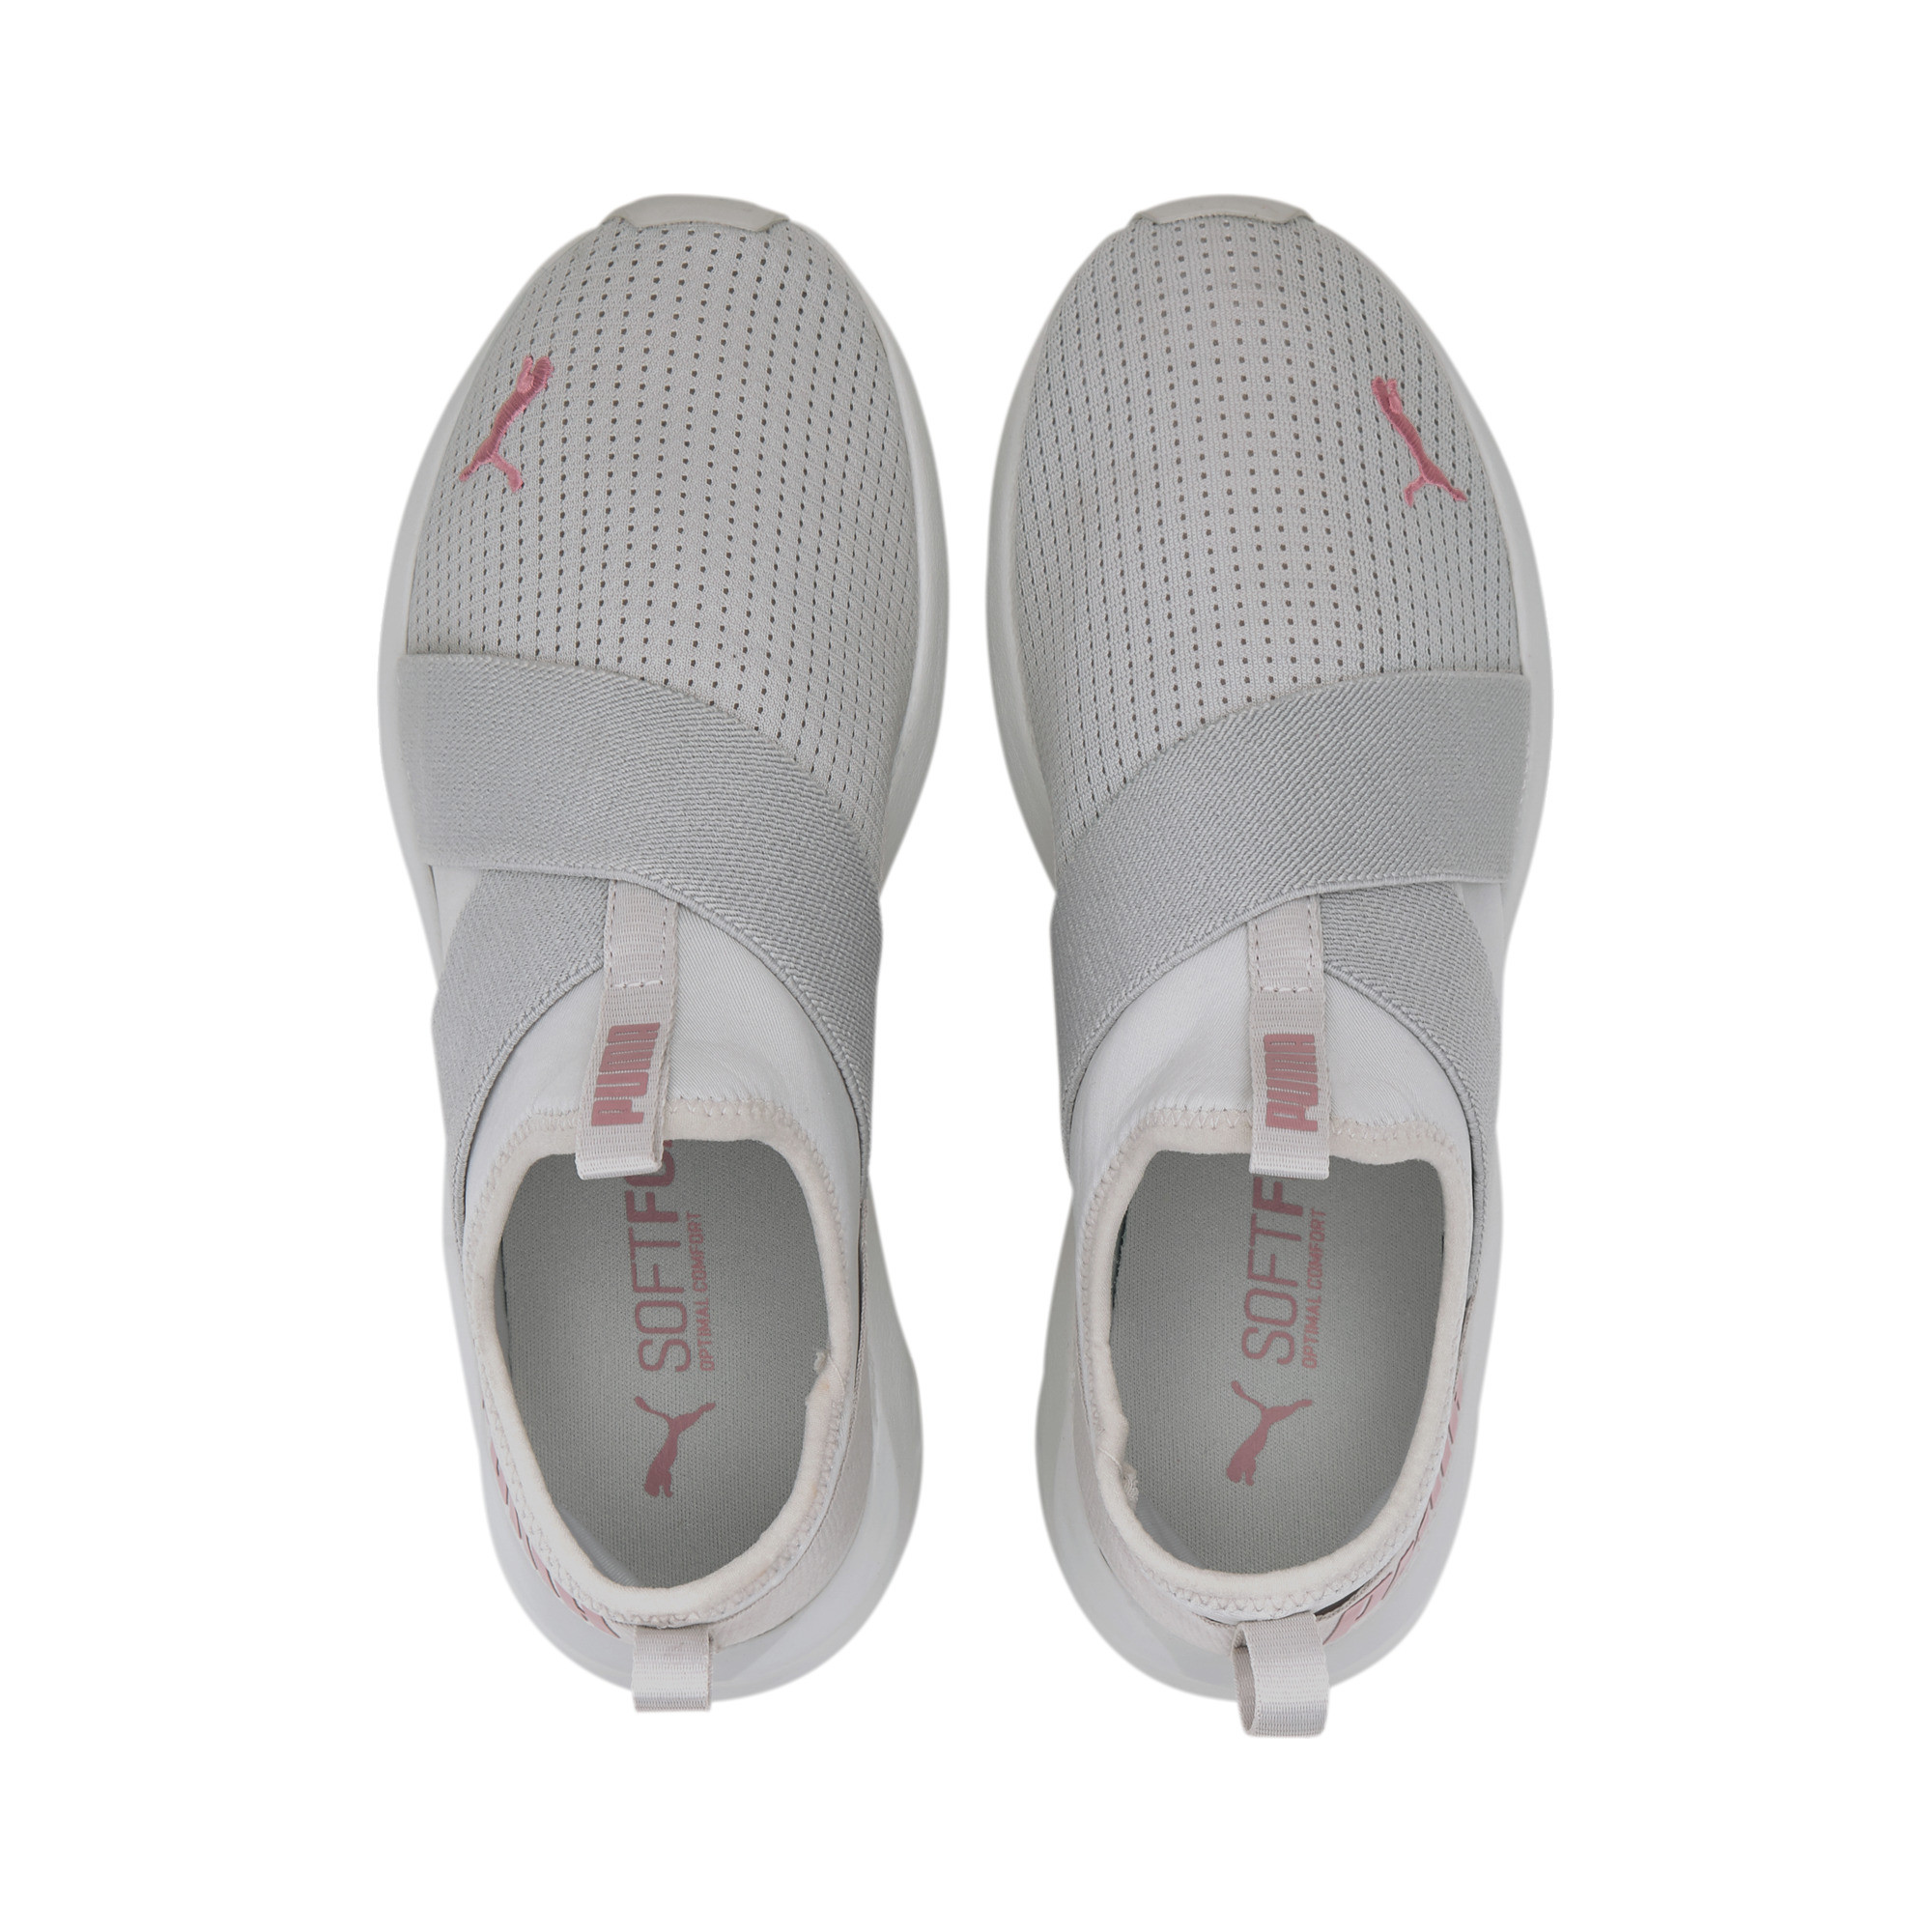 PUMA-Women-039-s-Prowl-Slip-On-Training-Shoes thumbnail 8